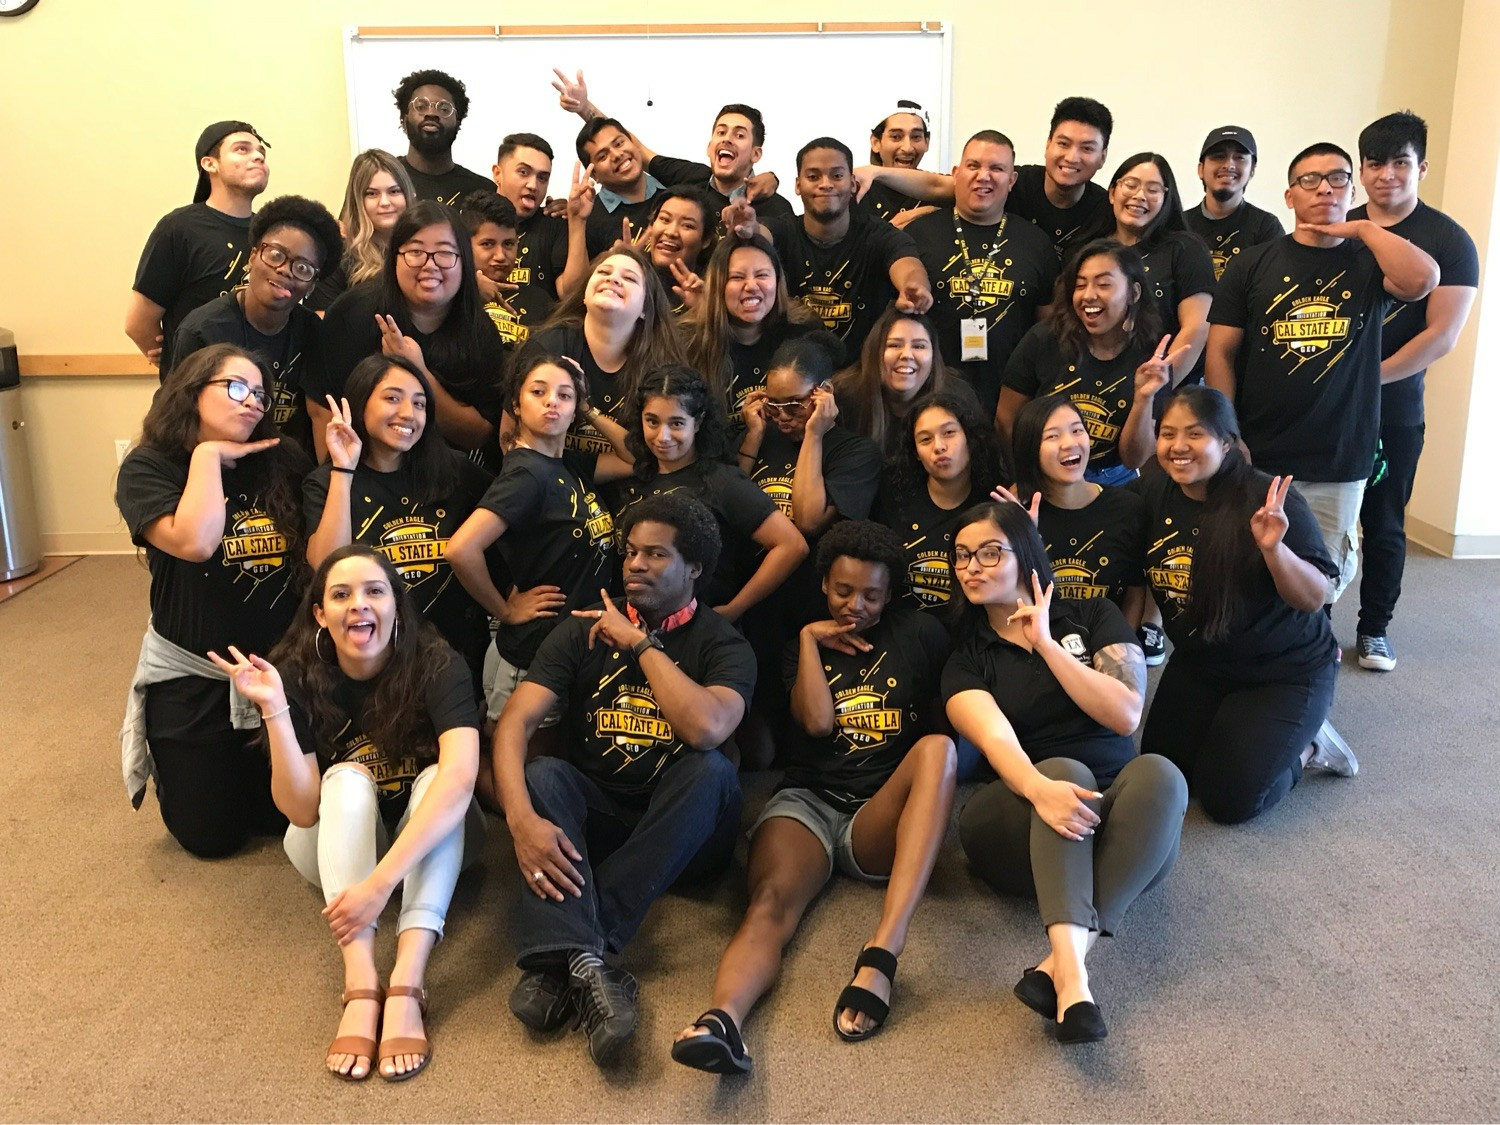 Silly photo of the summer 2018 Orientation Leader team with full time staff